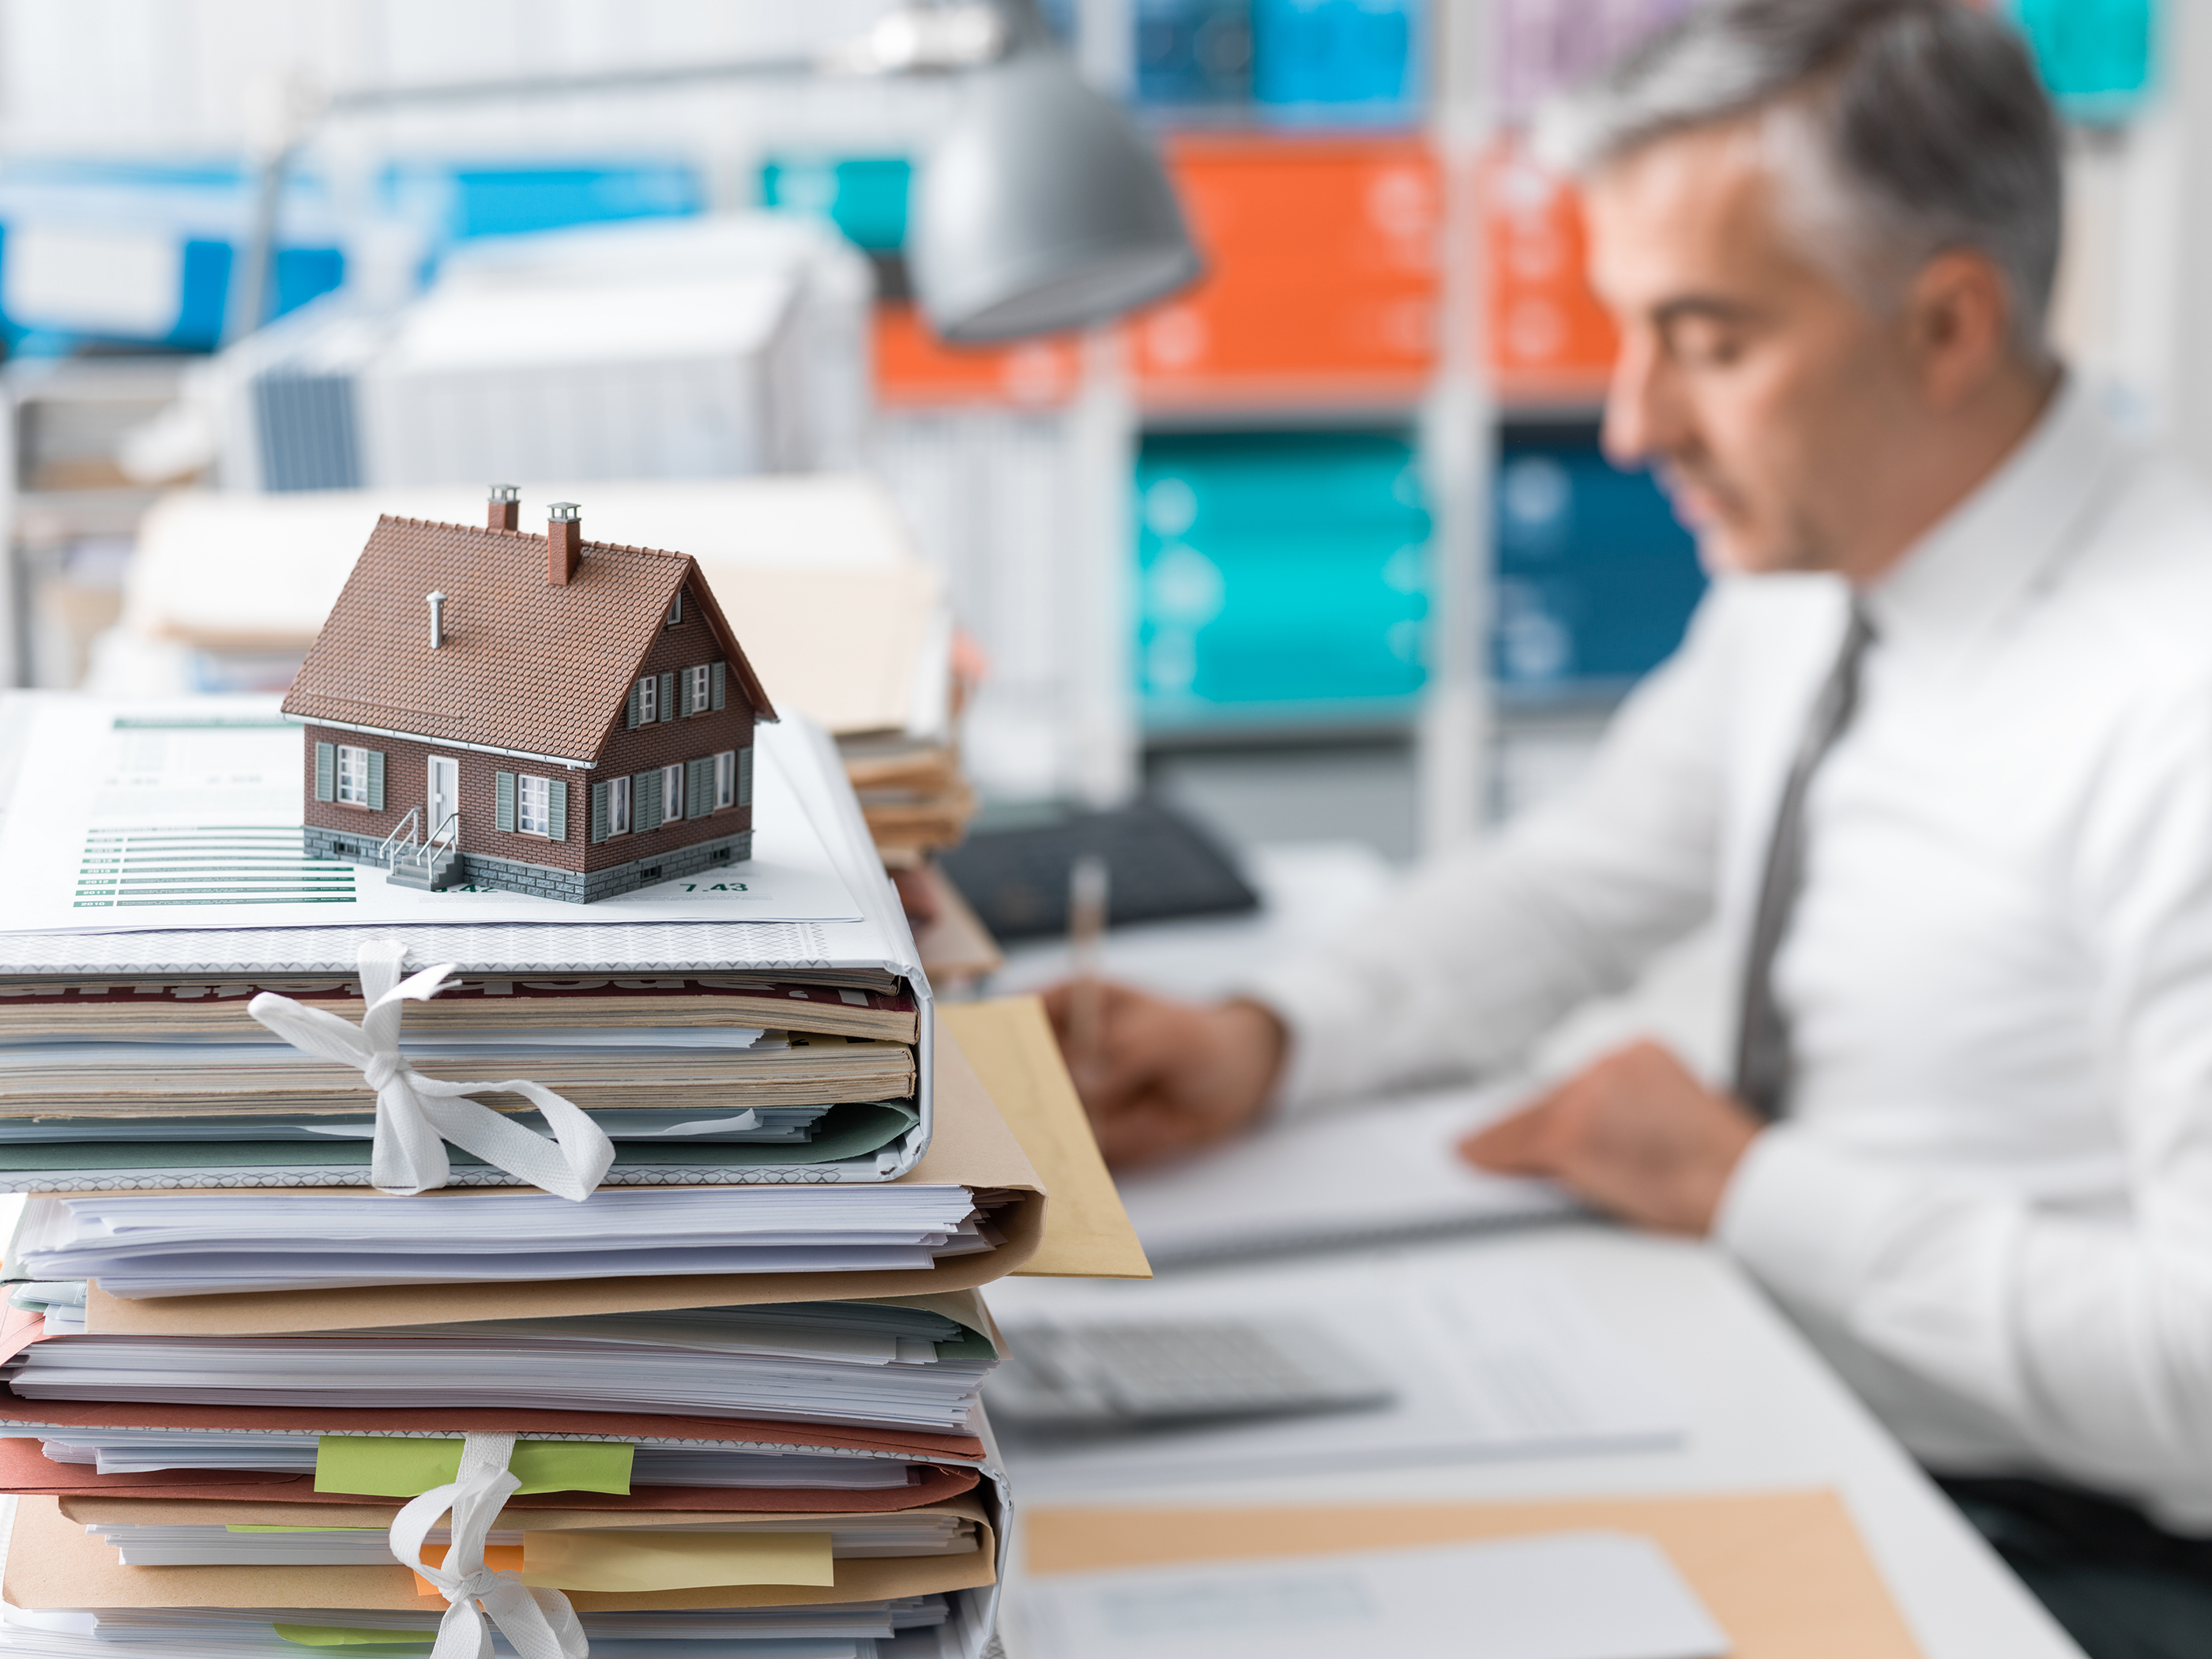 Mortgage loans and paperwork